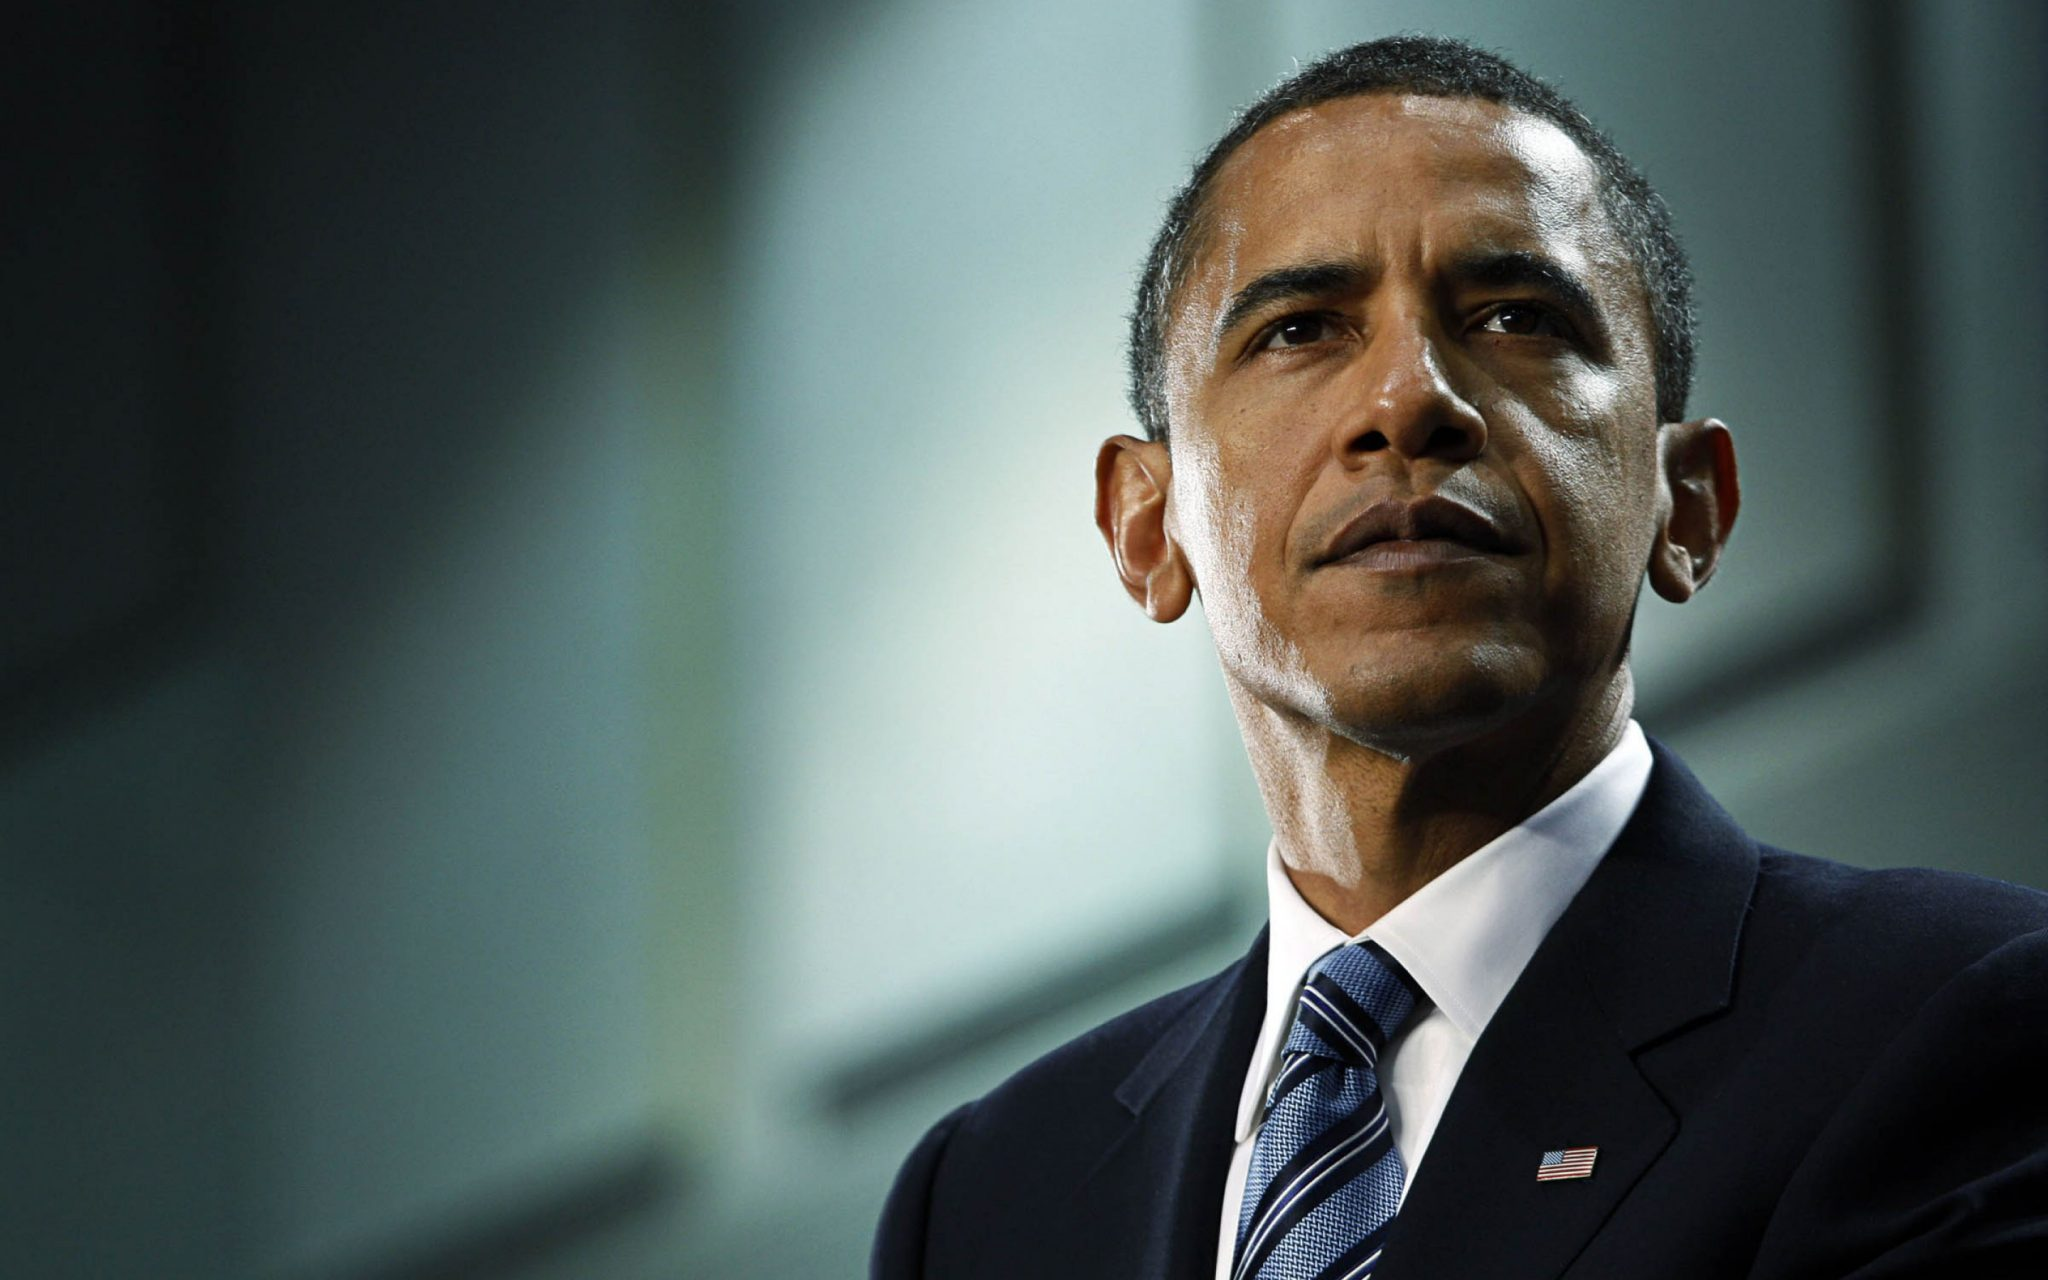 Barack obamas legacy as the first black president of the united states will always intrinsically be tied to race but during his eight years in office